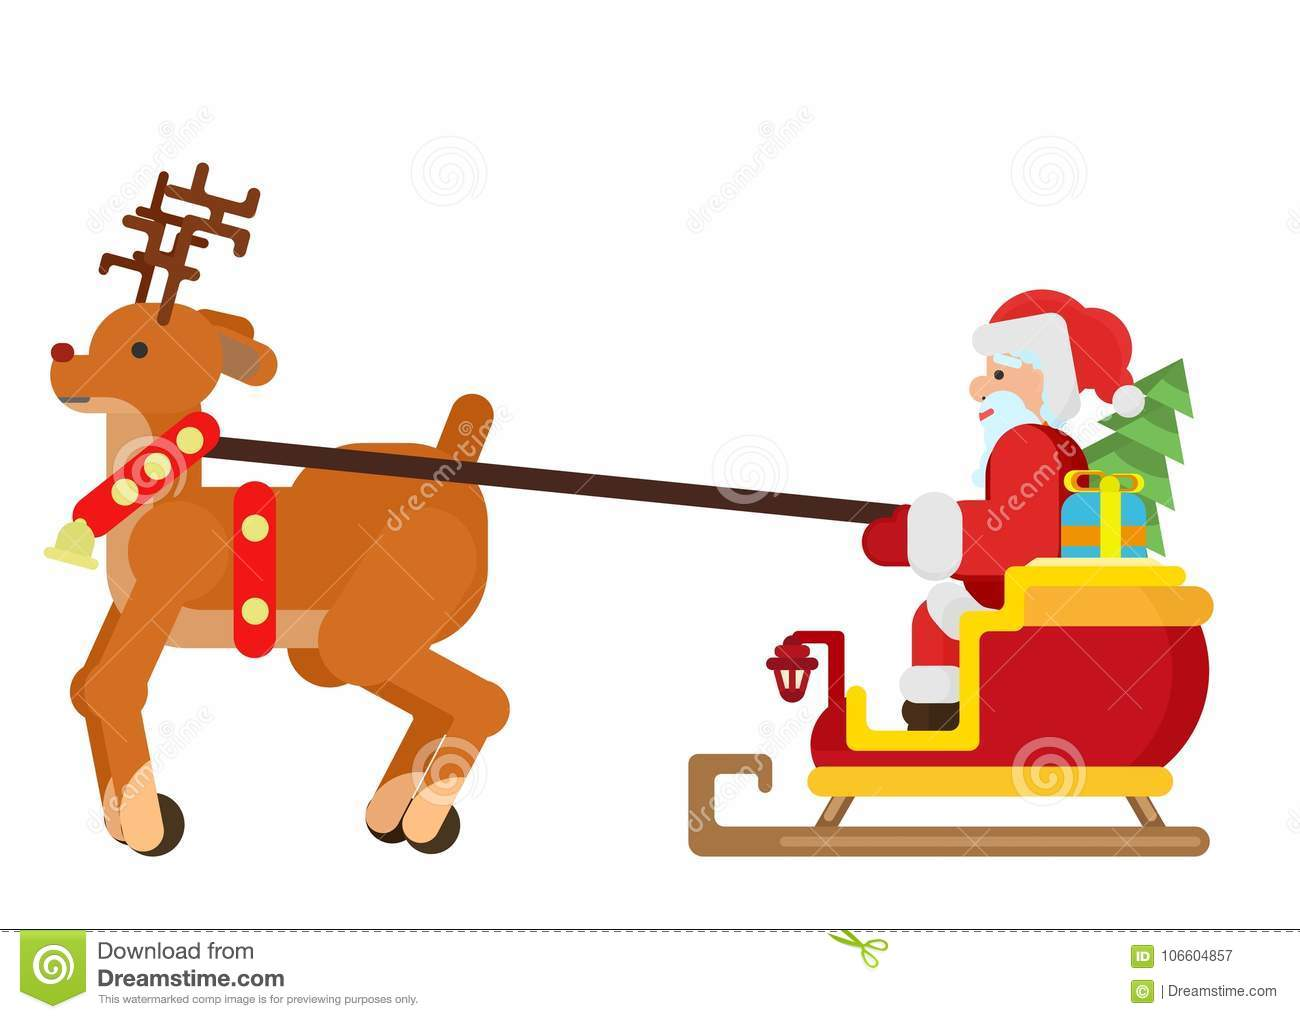 A reindeer drives a sleigh with Santa Claus and a Christmas tree